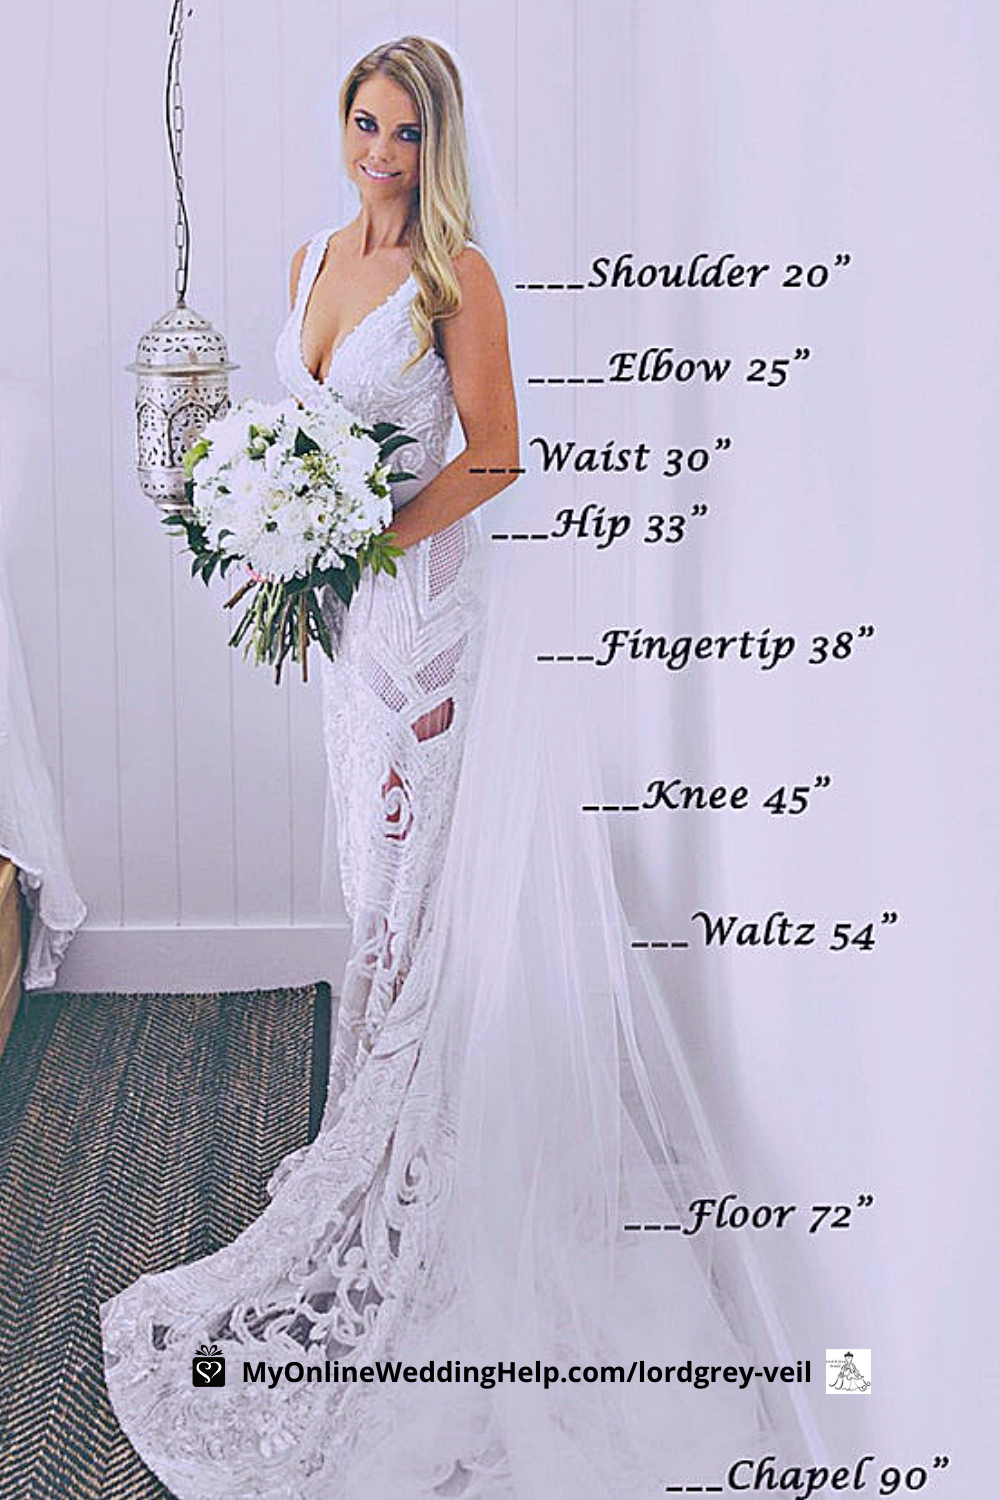 Beautiful bride wearing a long veil. Text labels show different veil lengths.